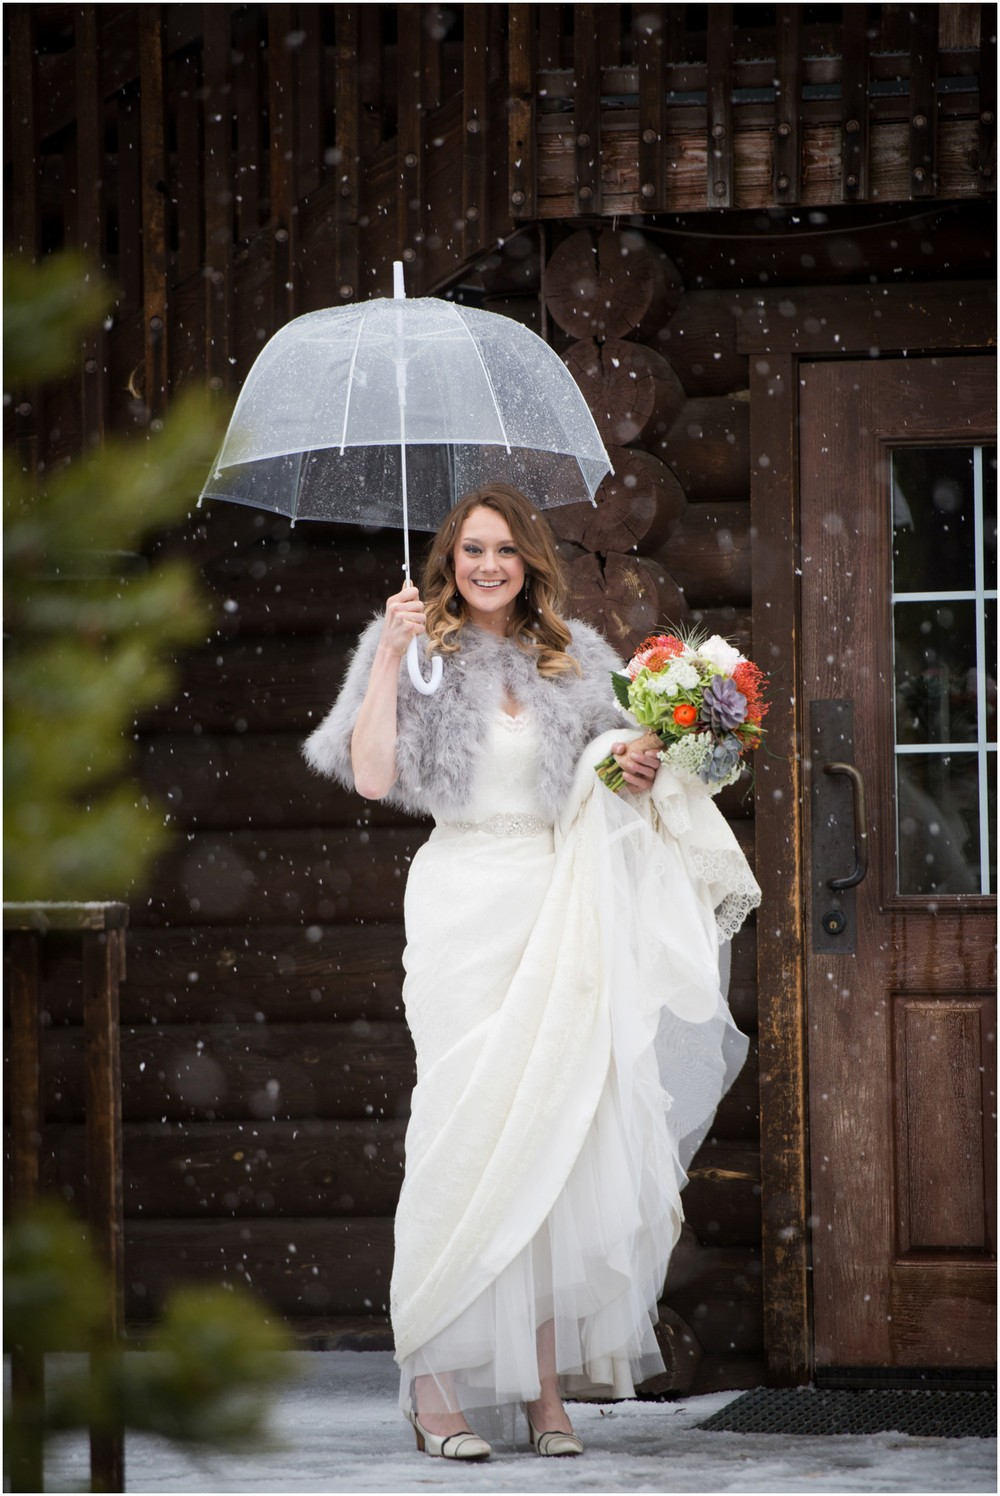 Devils-thumb-ranch-colorado-snowy-wedding-_0021.jpg